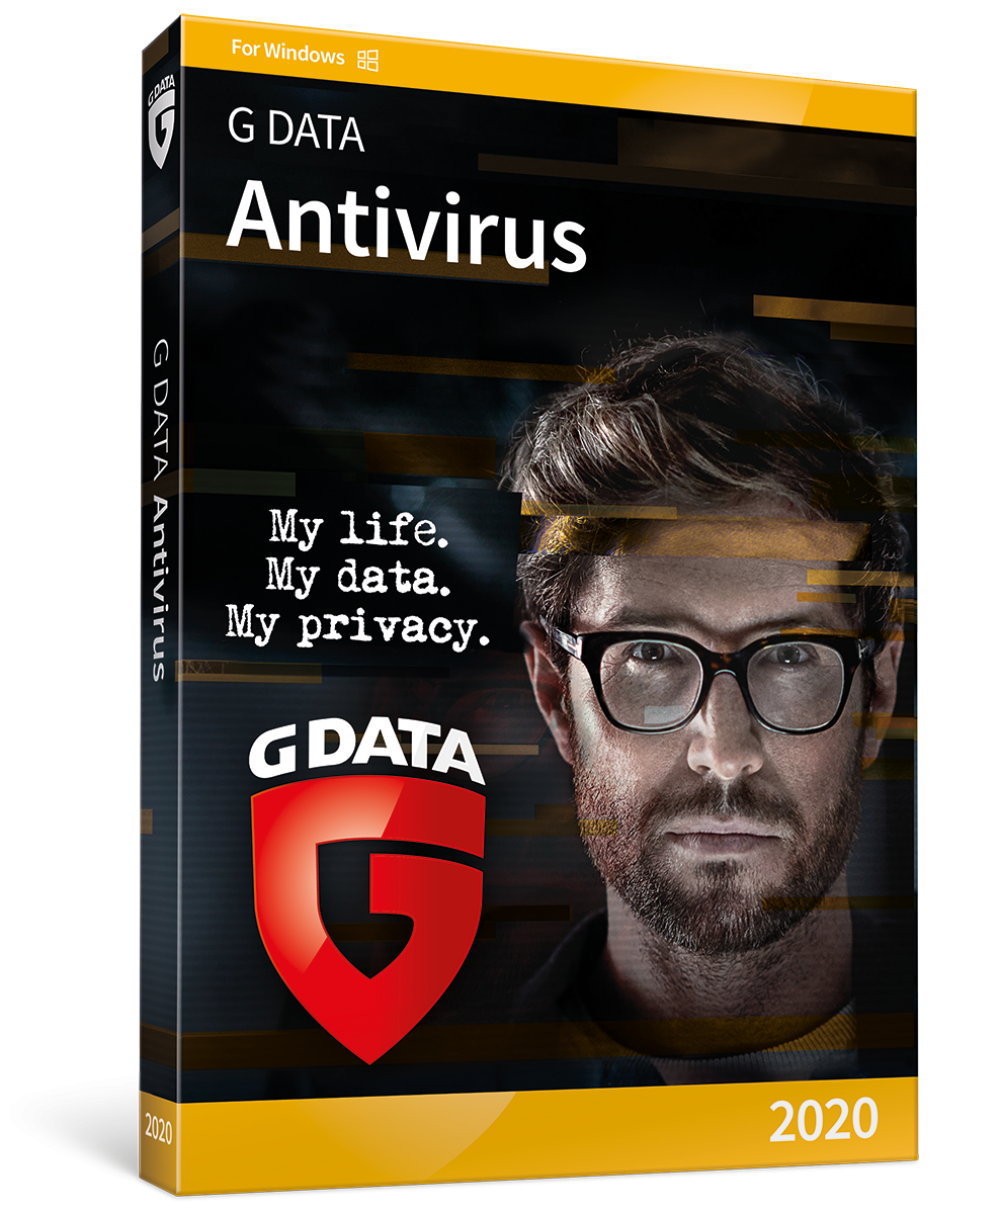 Antivirus G DATA 2020 pentru windows 12 luni 2 dispozitive imagine